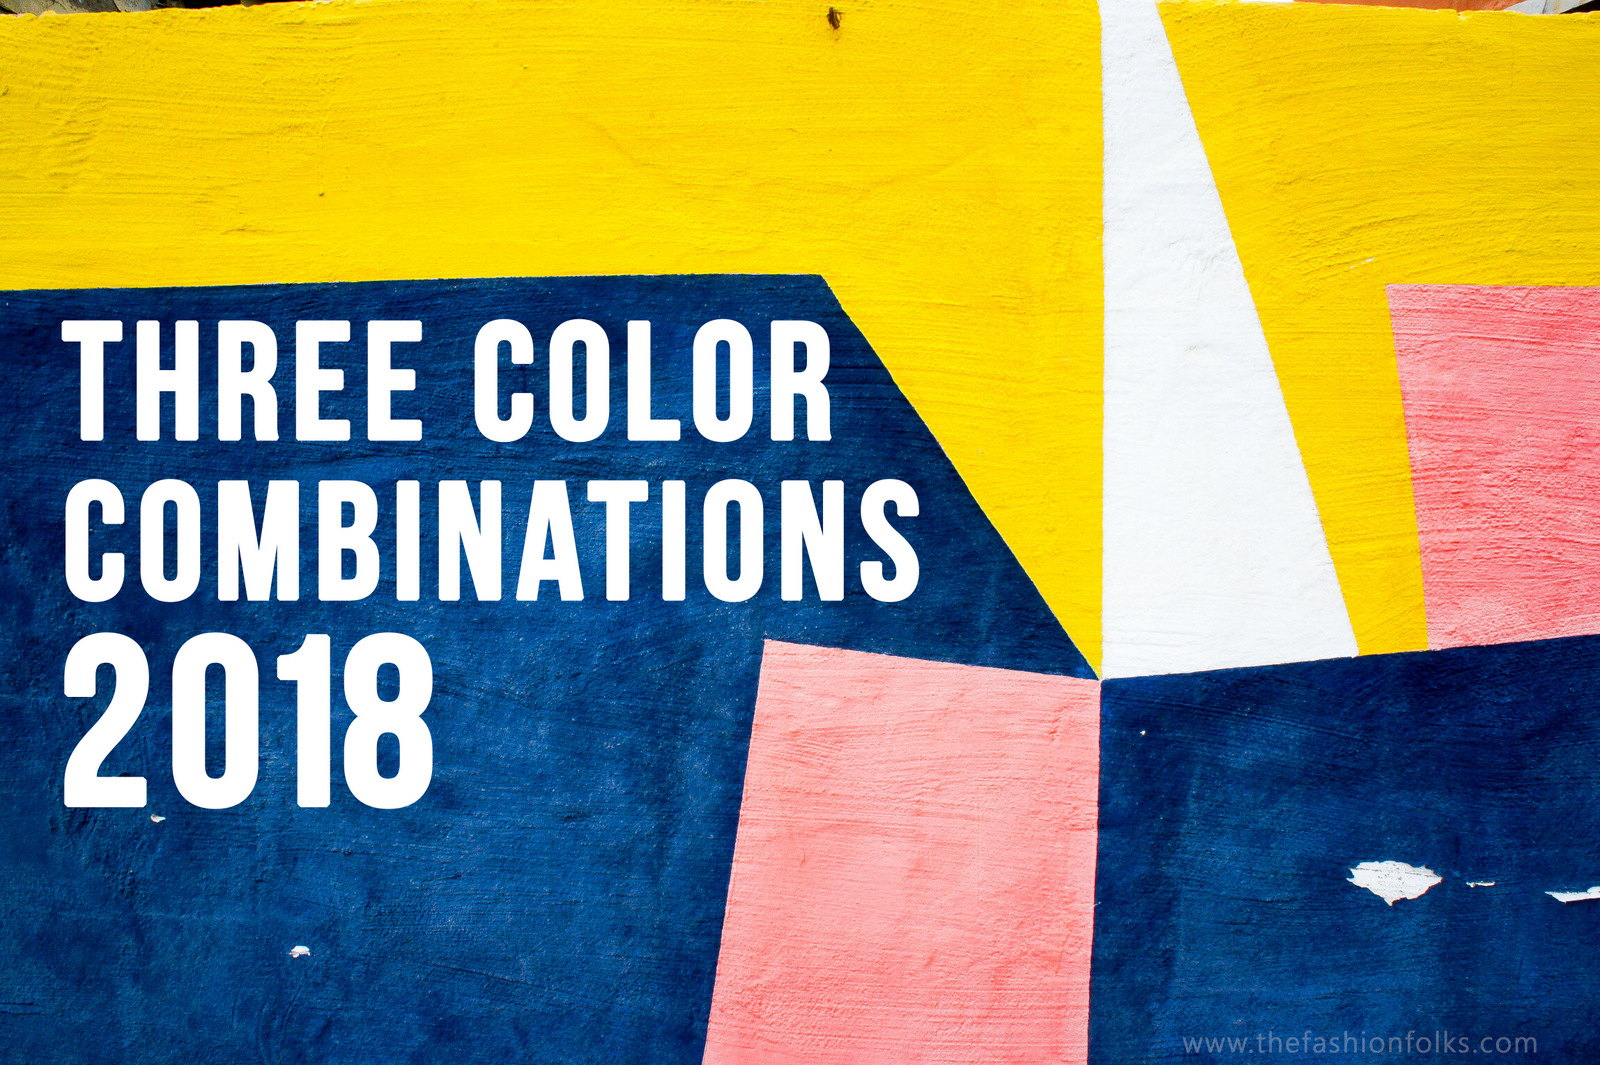 Three Color Combinations 2018